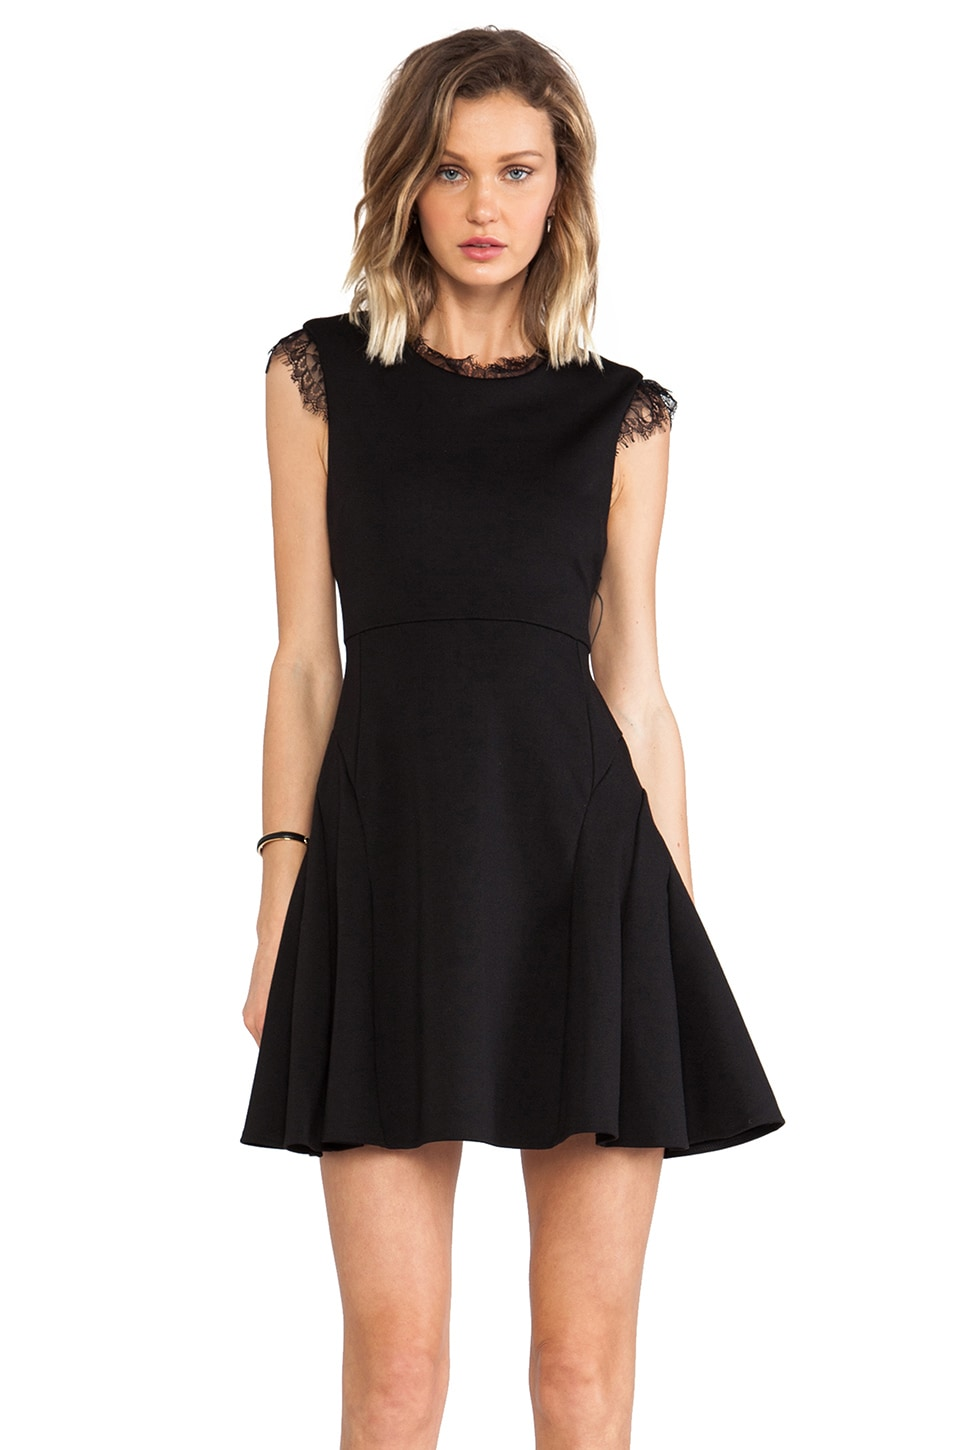 CHALK Player Dress in Black